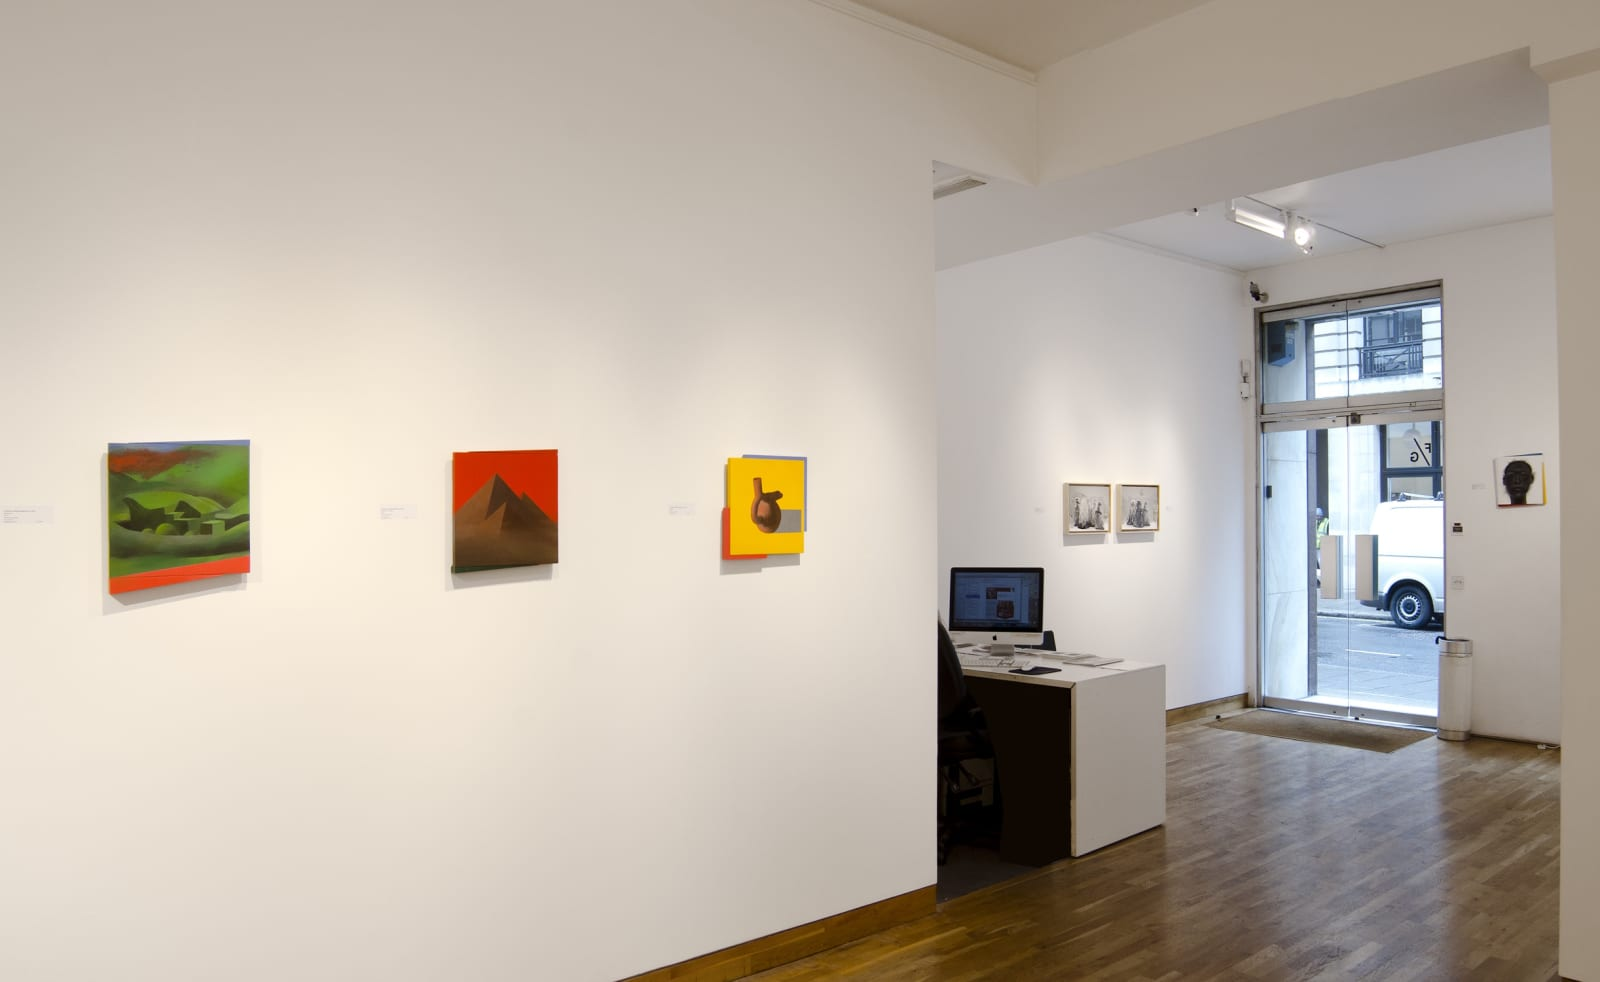 ANTONY DONALDSON & JOE GOODE Installation View